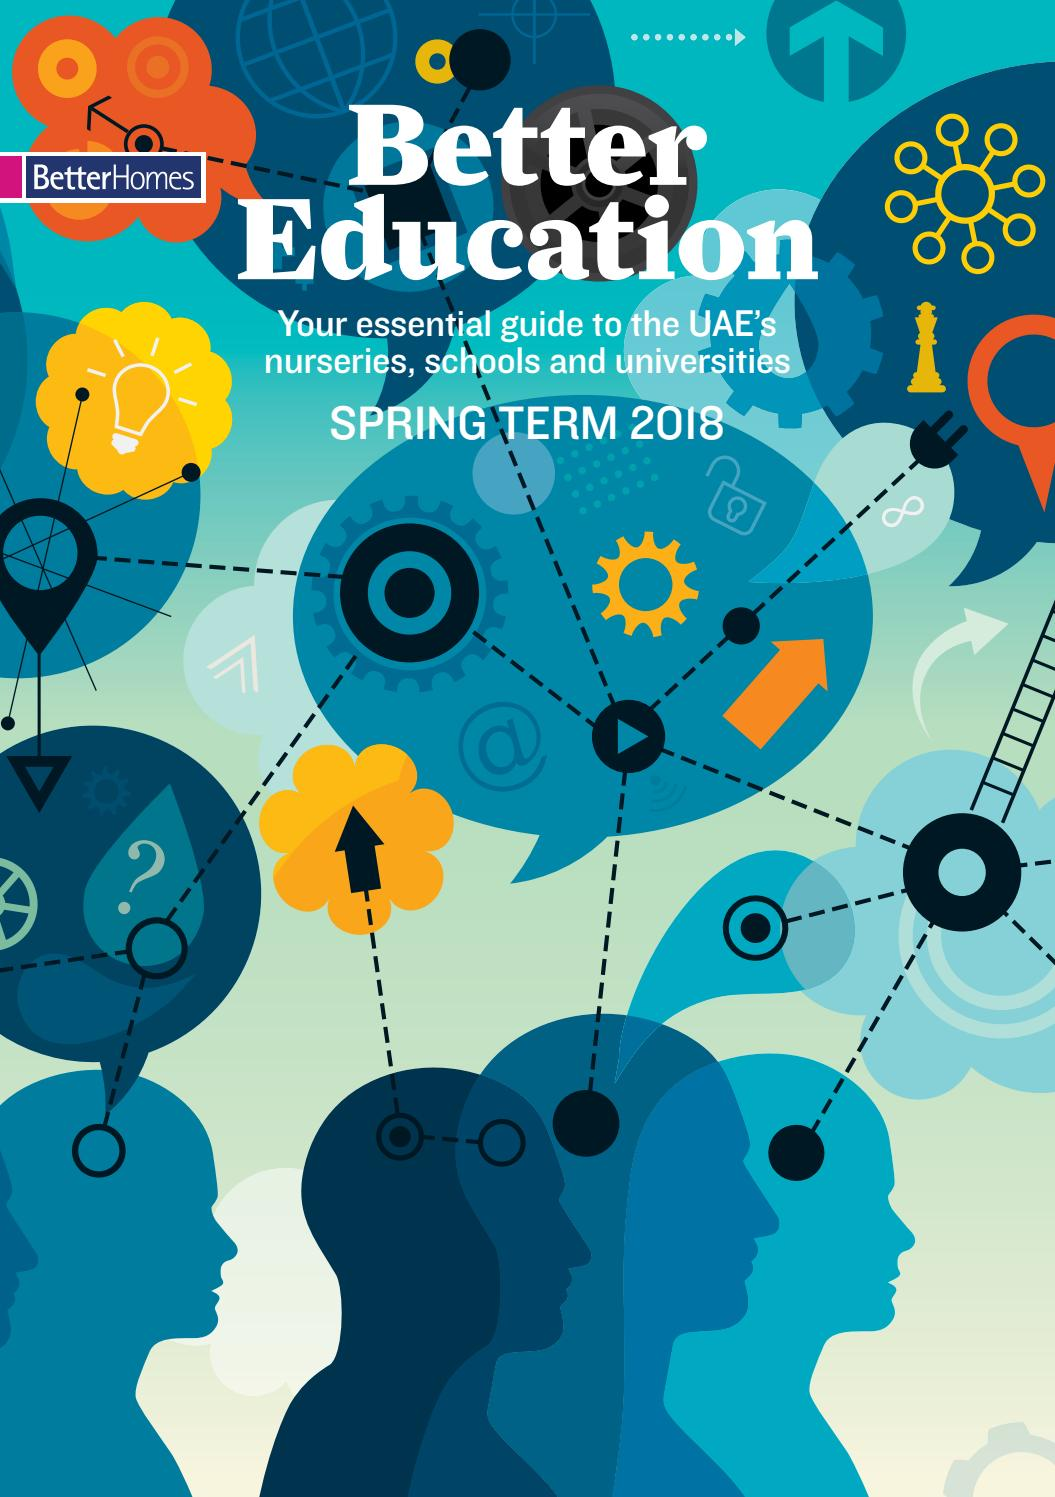 Better Education Guide - Spring Term\'18 by Hot Media - issuu